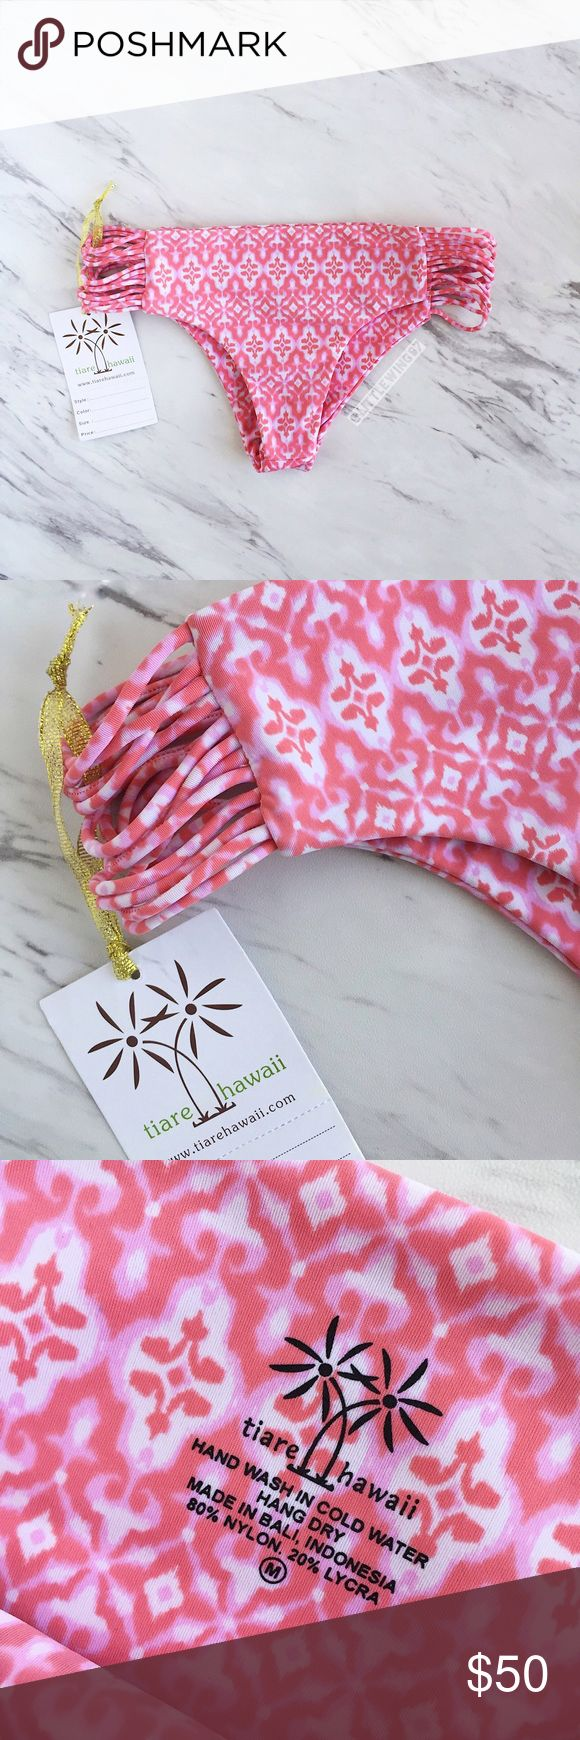 Tiare Hawaii strappy pink bikini bottoms Tiare Hawaii | 'Pebbles' strappy bikini bottoms in a bright pink and white pattern. These bikini bottoms feature criss cross side straps, brief cut, and an allover print. Fully lined. New with tags; no hygienic liner.   Size: M Tiare Hawaii Swim Bikinis